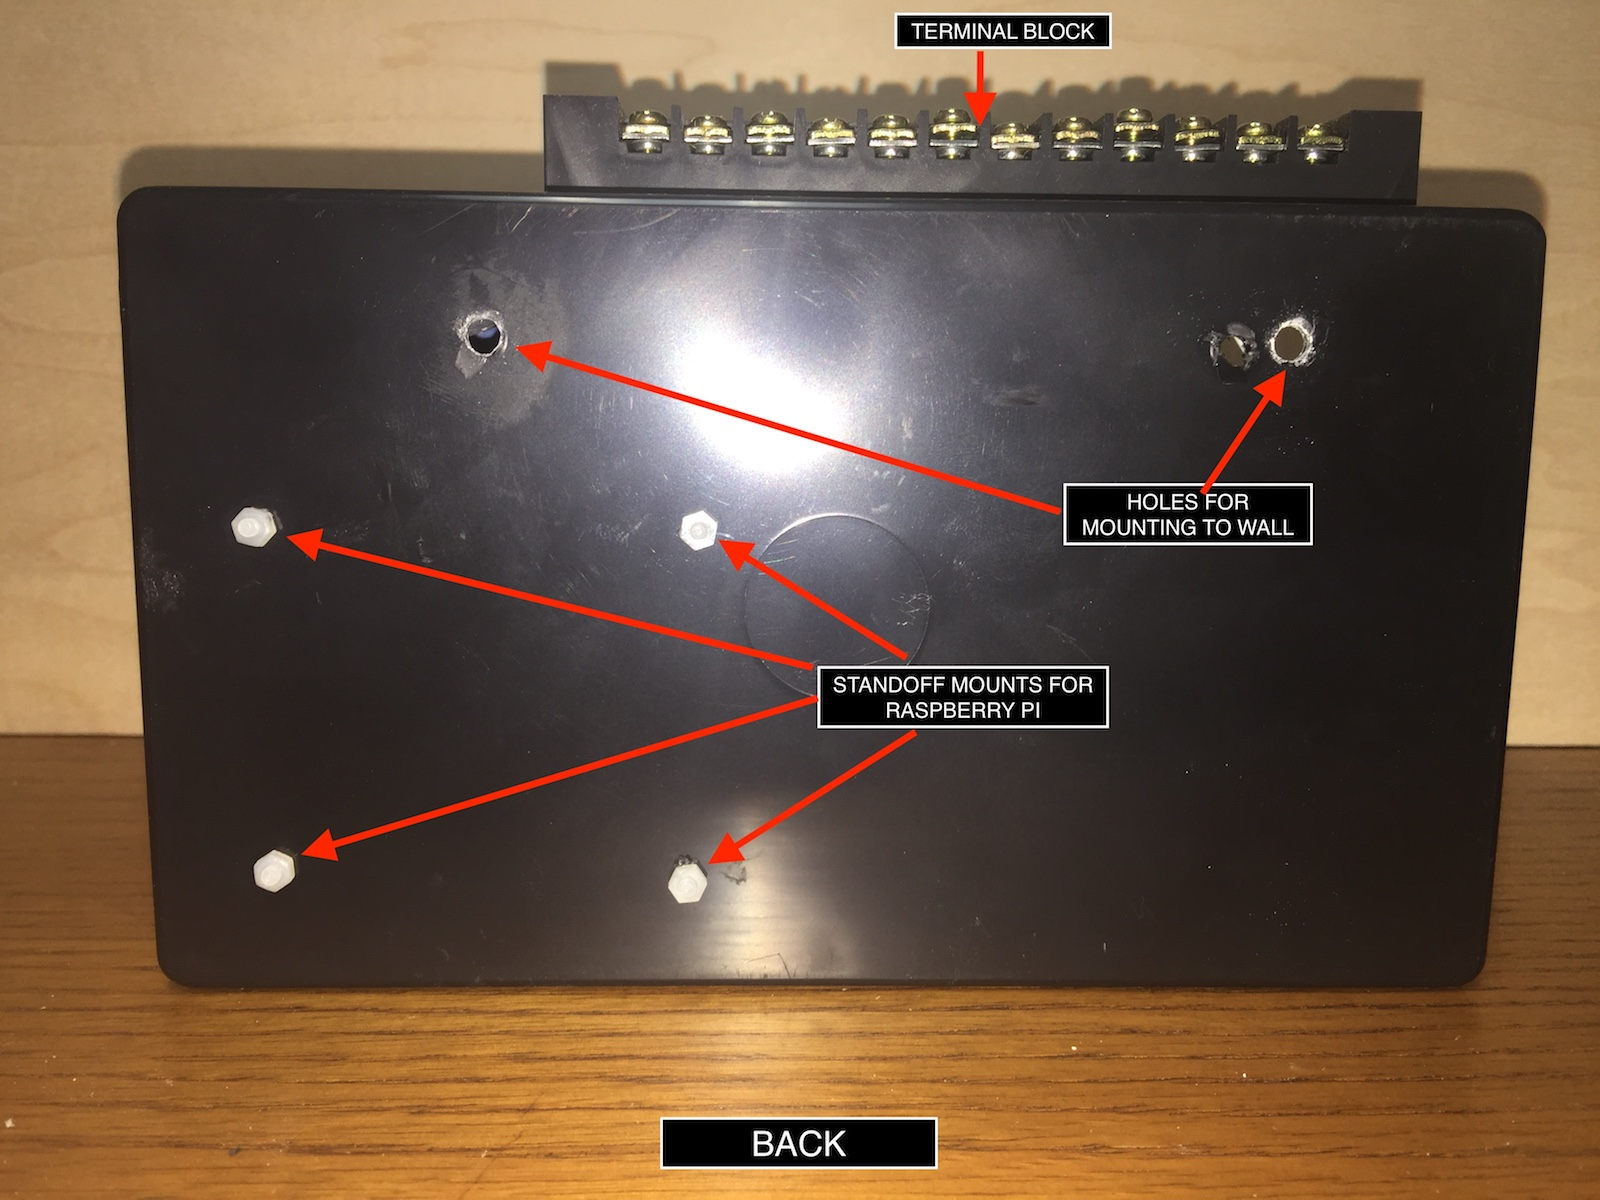 hight resolution of fig 3 back side of the project box with standoff mounts